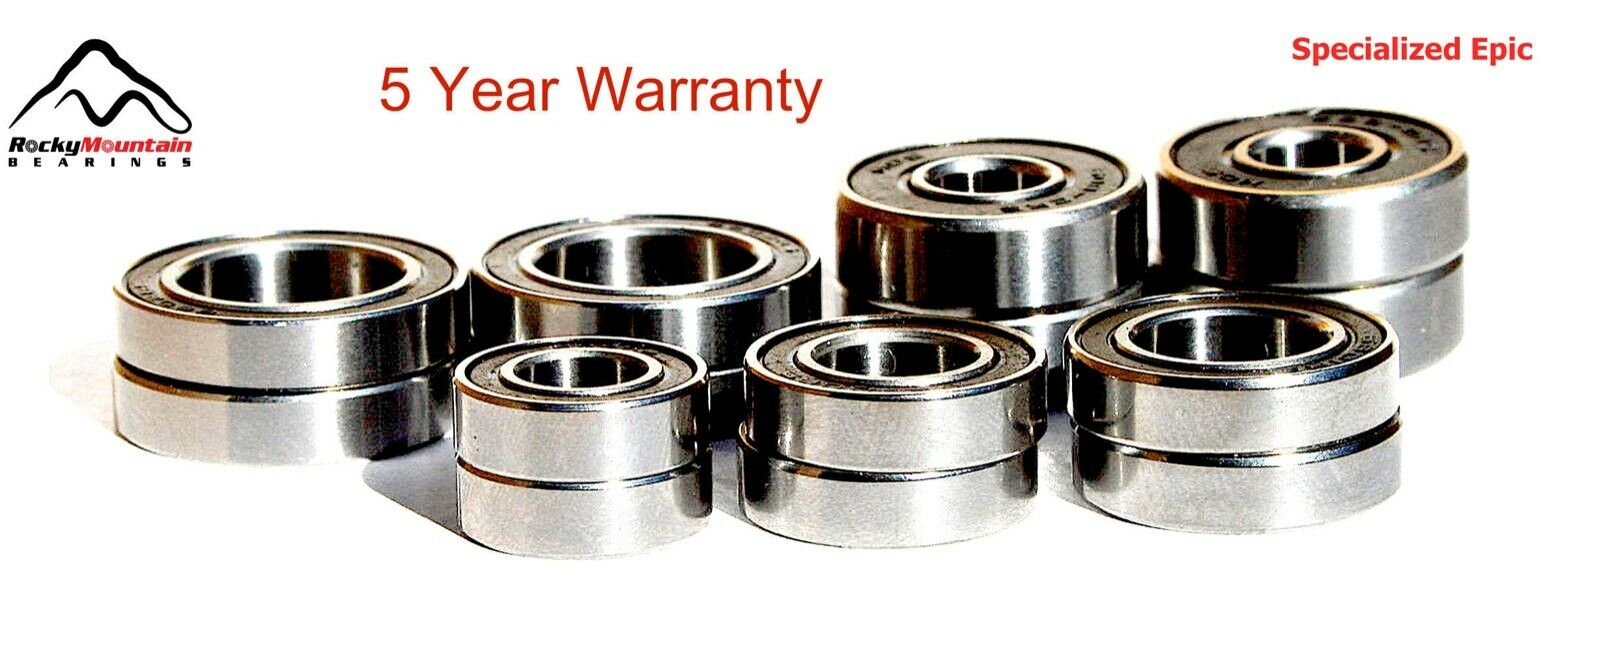 SPECIALIZED EPIC 2006-2008 FULL COMPLEMENT BEARING KIT